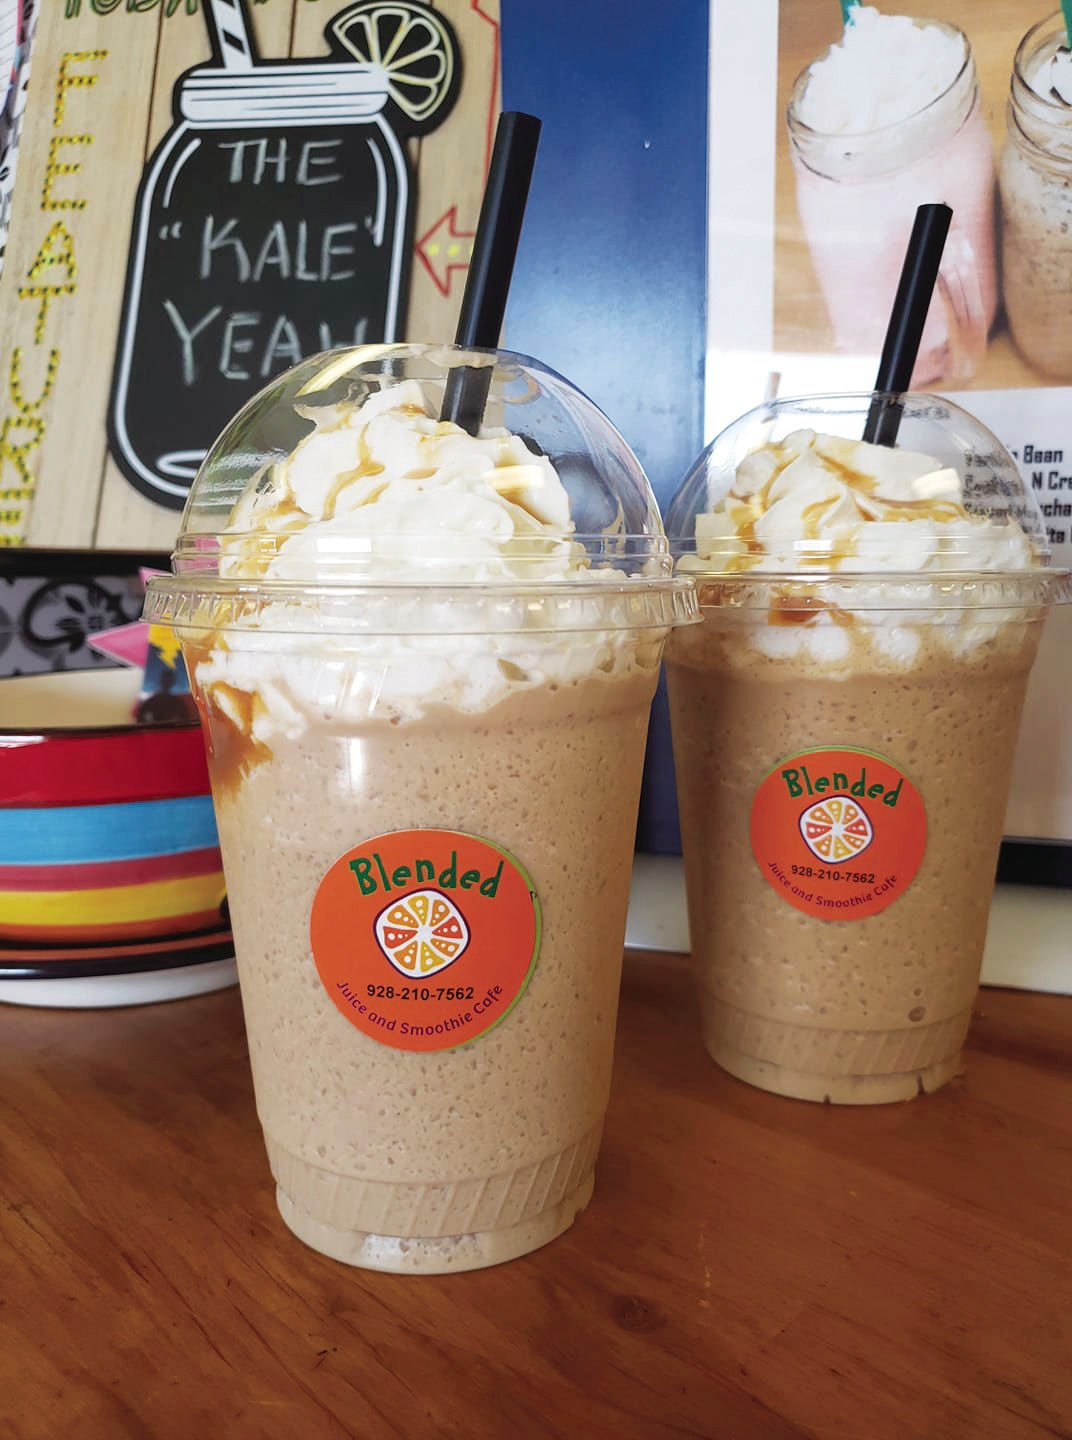 Sunkissed, Leto's now open in Yuma